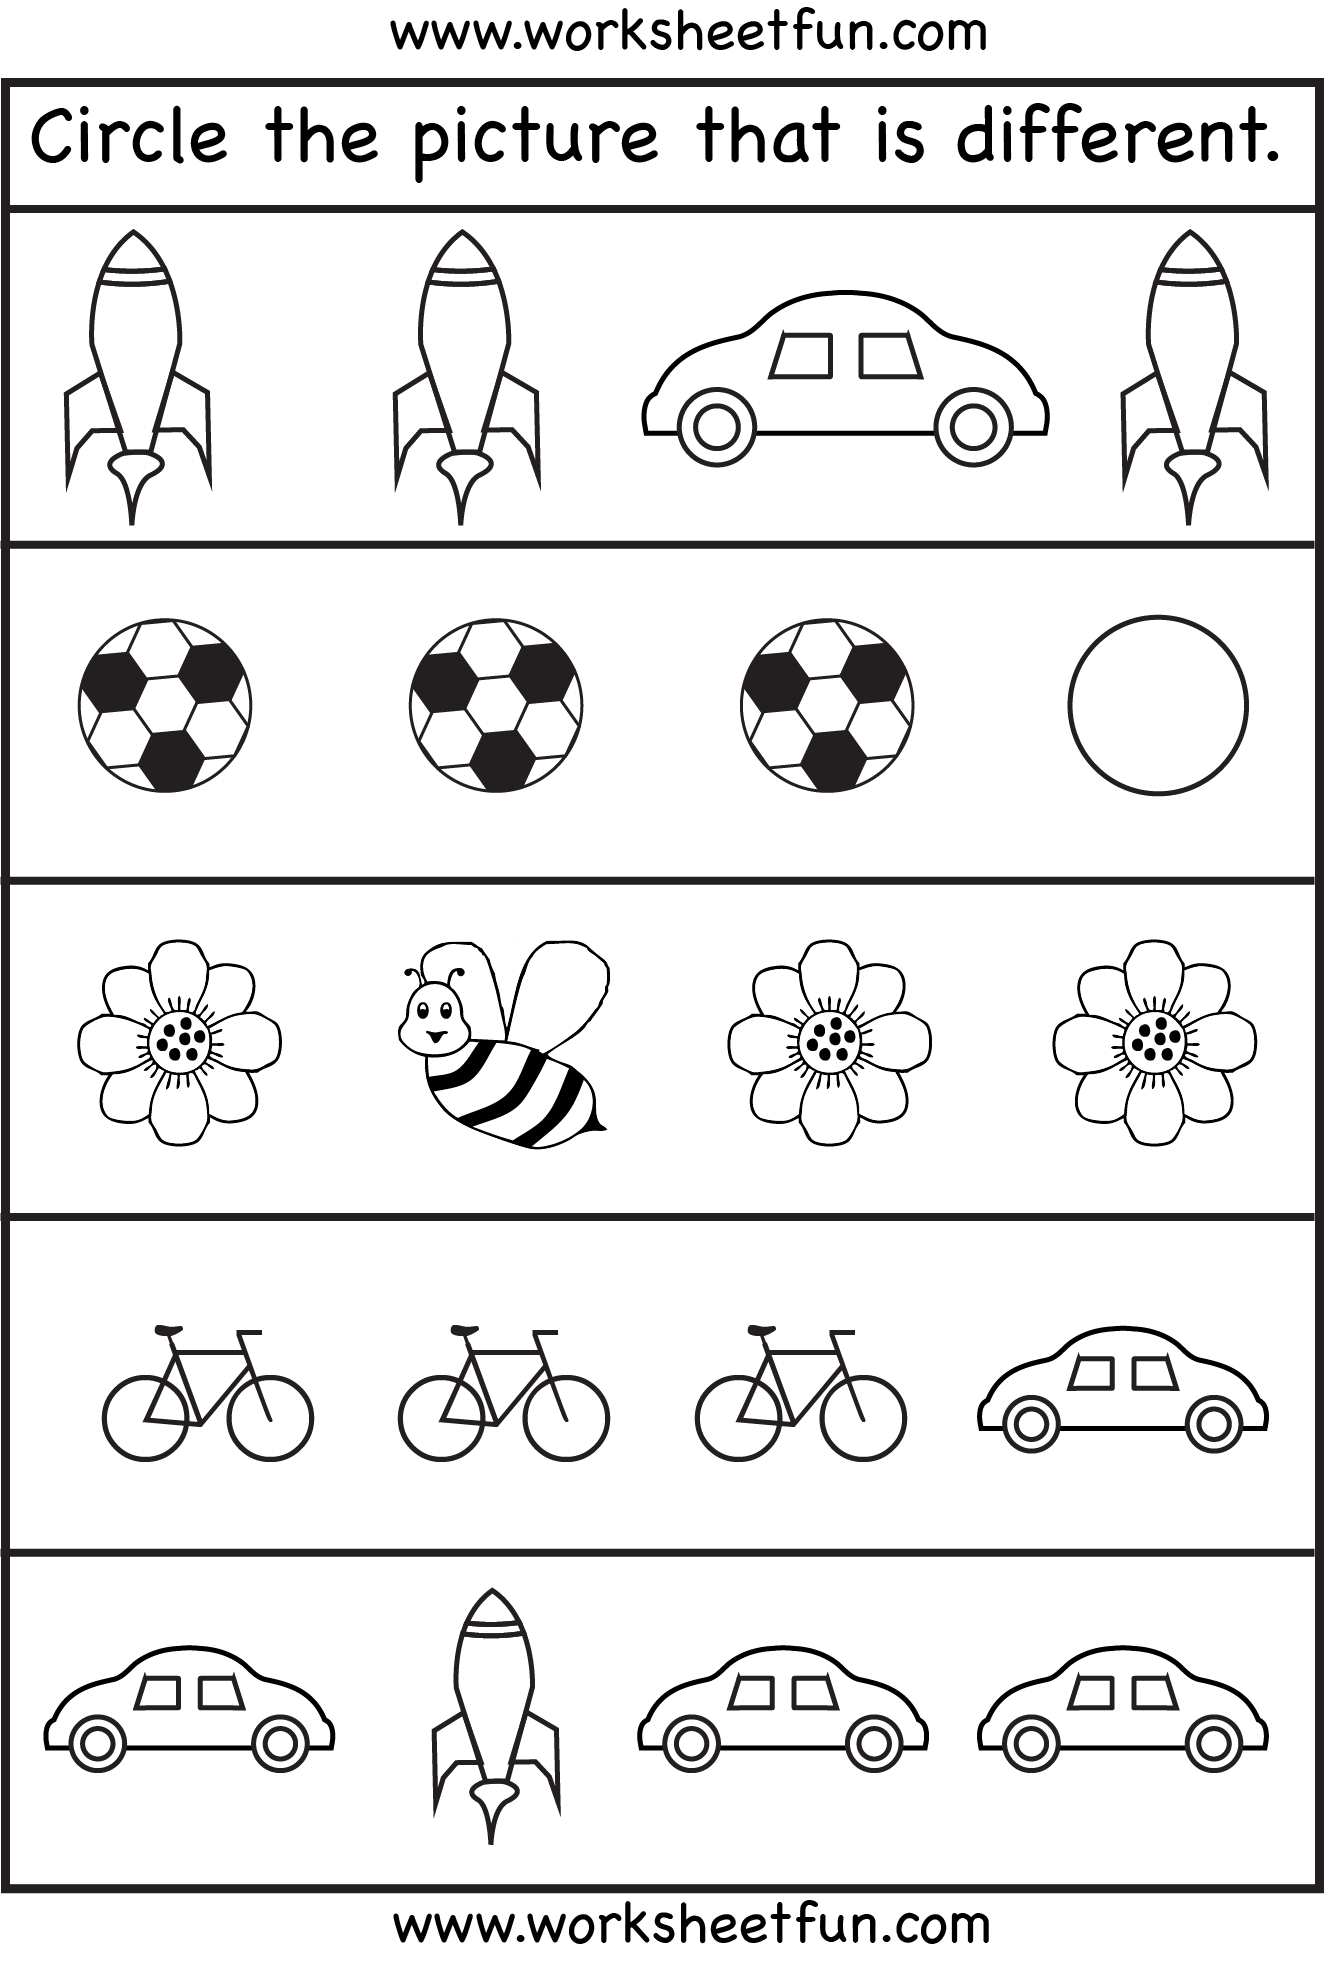 worksheet Printable Worksheets For 3 Year Olds circle the picture that is different 4 worksheets fitxes language activitieslearning activities3 year old